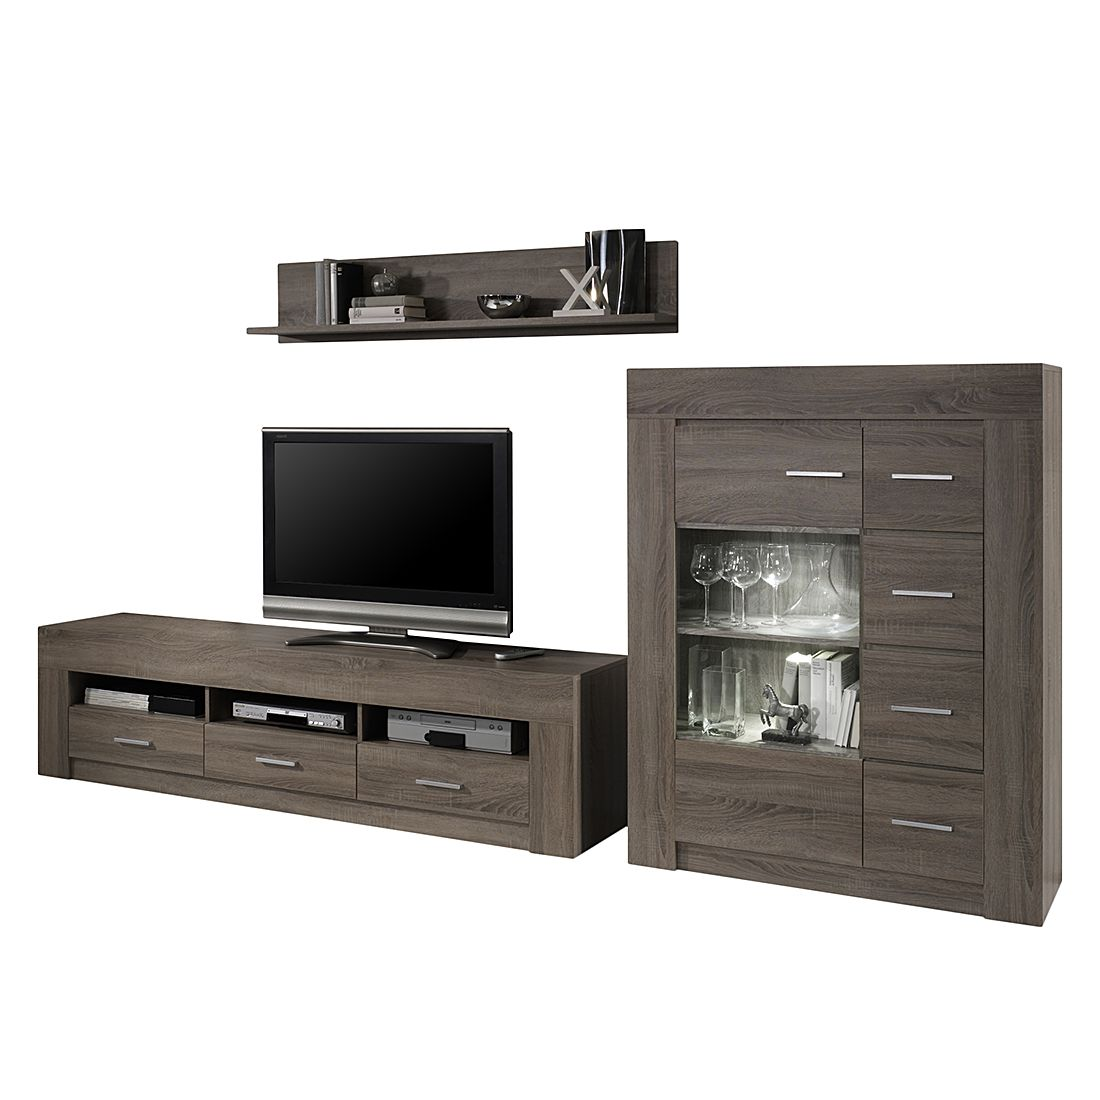 wohnwand impresa ii 3 teilig sonoma eiche dekor ohne. Black Bedroom Furniture Sets. Home Design Ideas